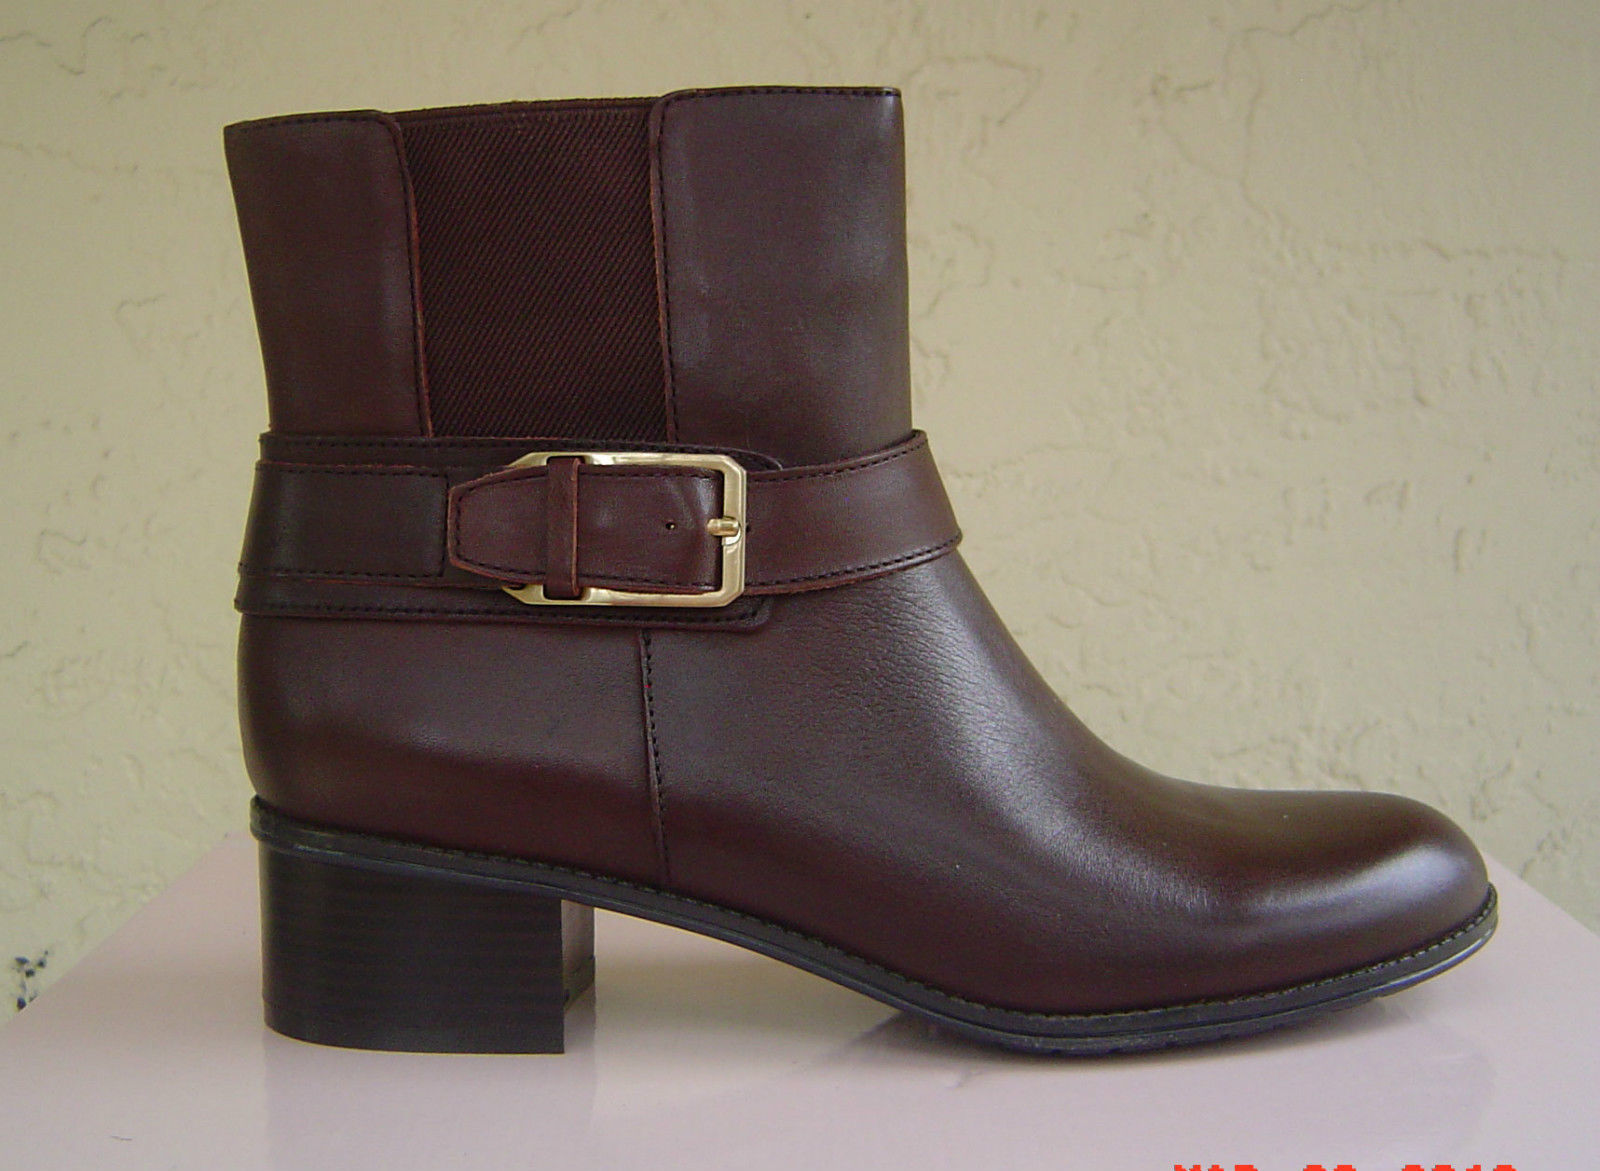 Primary image for NEW BANDOLINO BROWN LEATHER ANKLE BOOTS SIZE 7.5 M